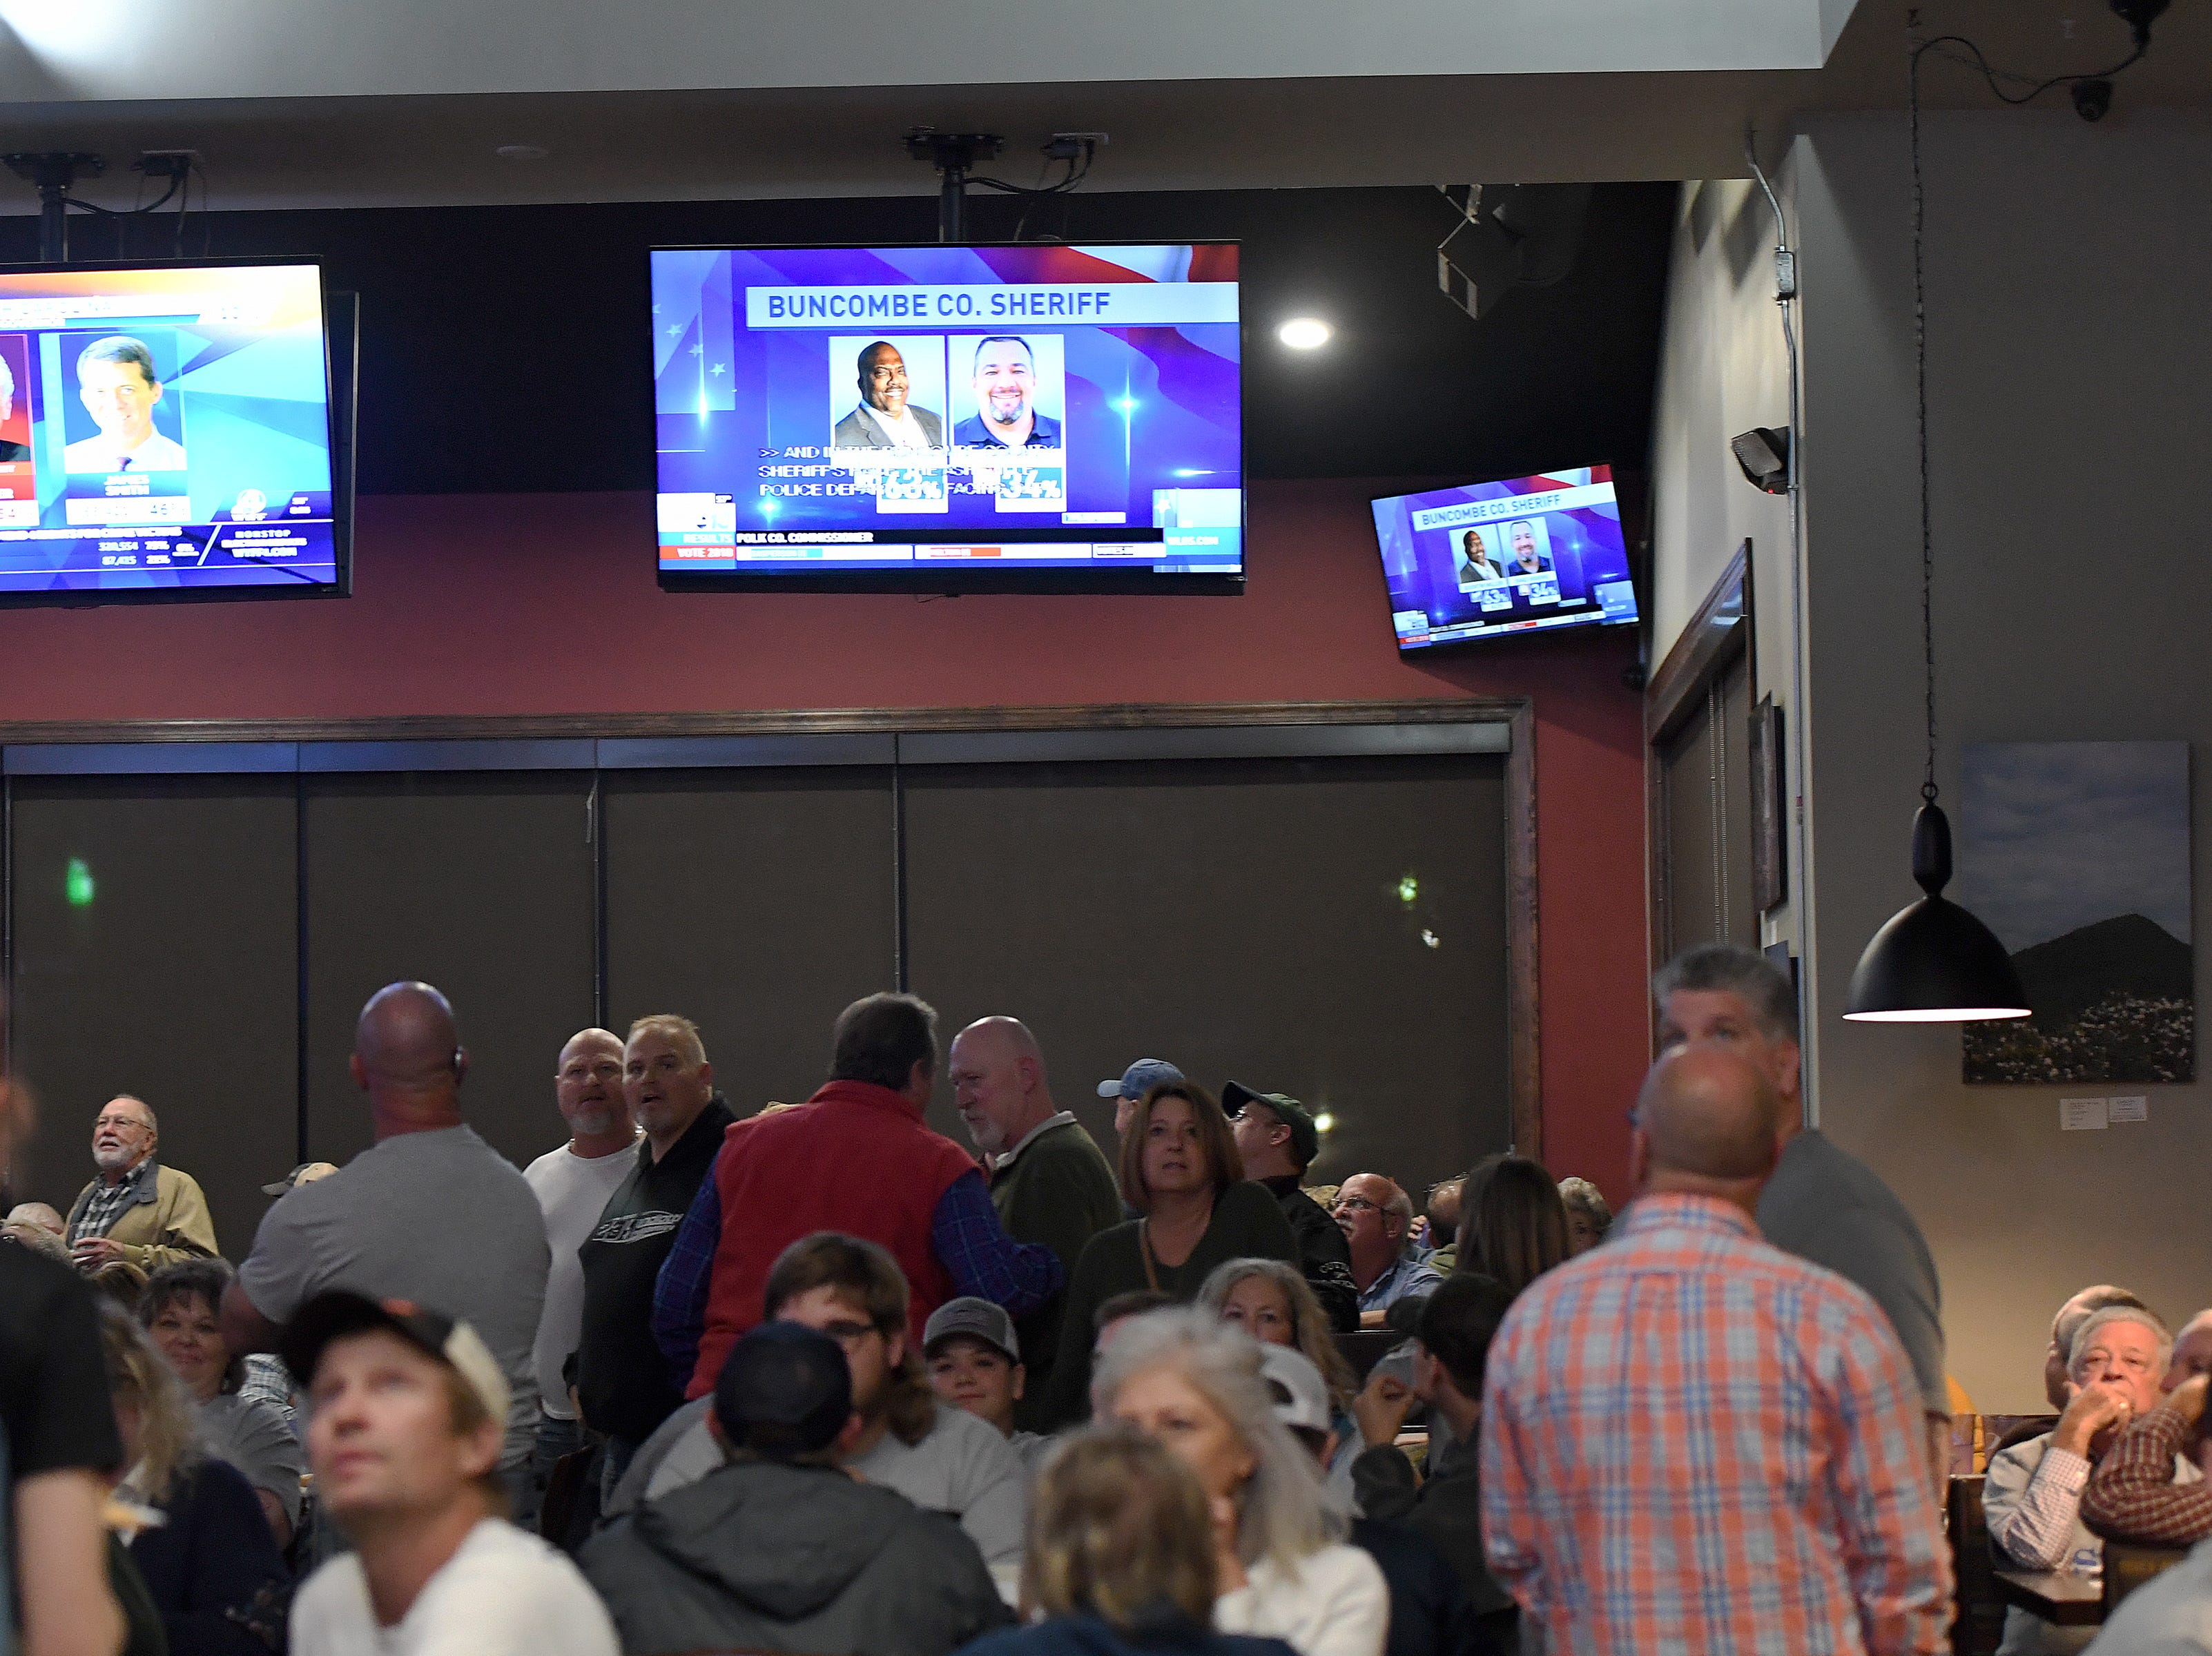 Supporters watch as election results are reported during an election results watch party for the Buncombe County Republicans at Twisted Laurel on Nov. 6, 2018.